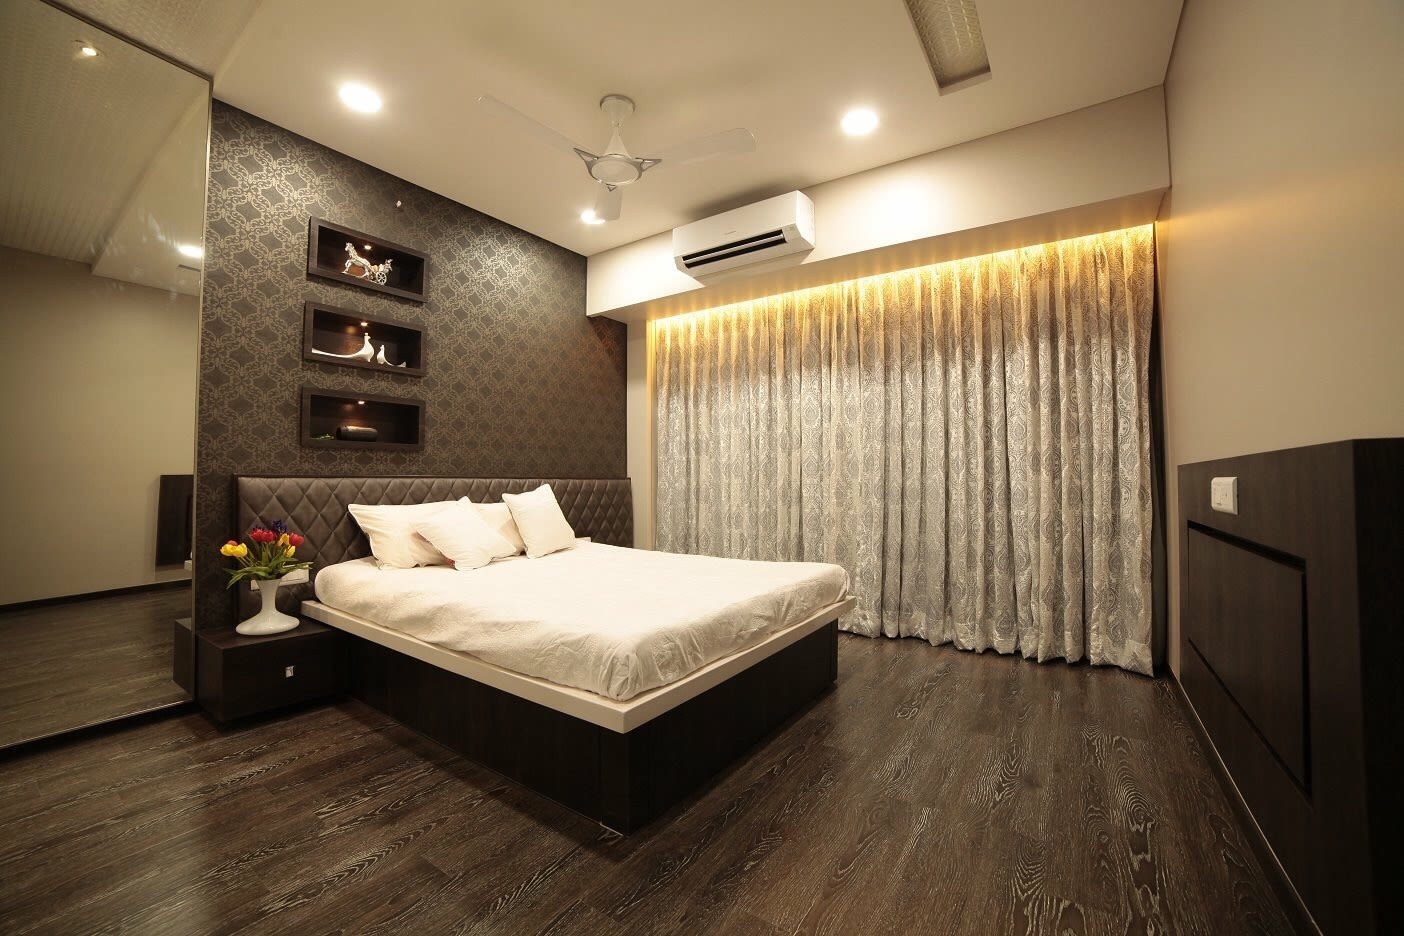 Chestnut Choice by Pragati Interior@ Contemporary | Interior Design Photos & Ideas